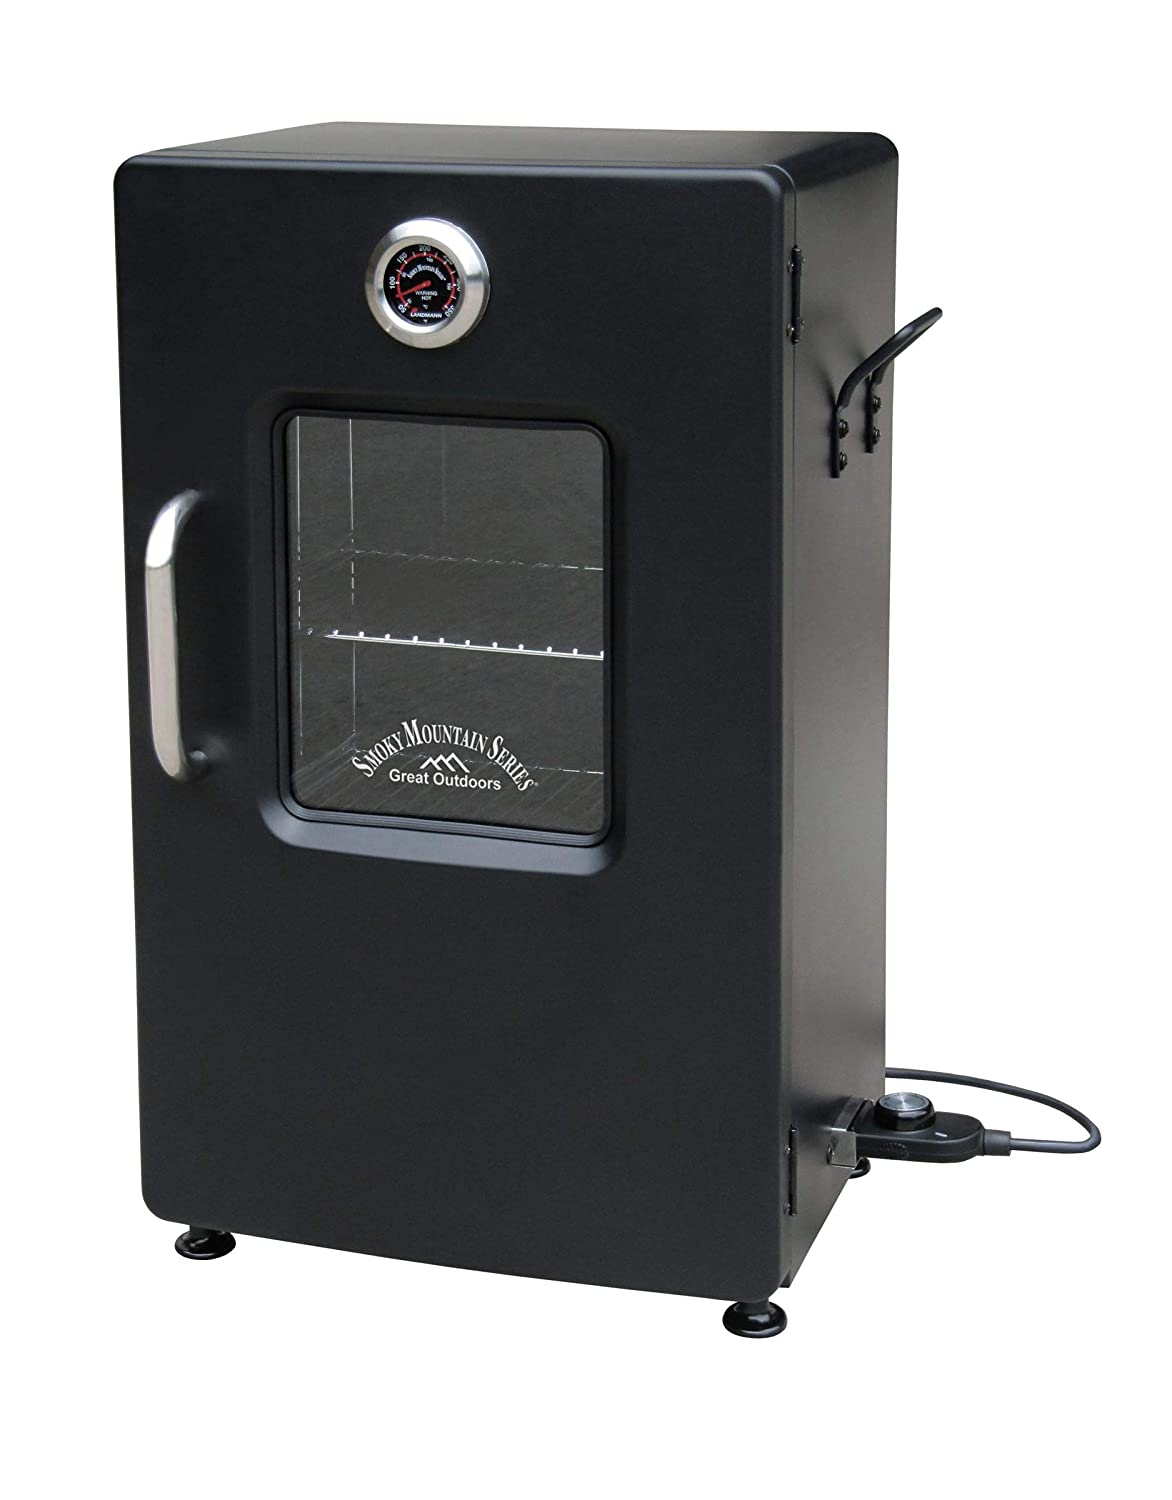 Top 10 Best Electric Meat Smokers (Reviews in 2021) 8